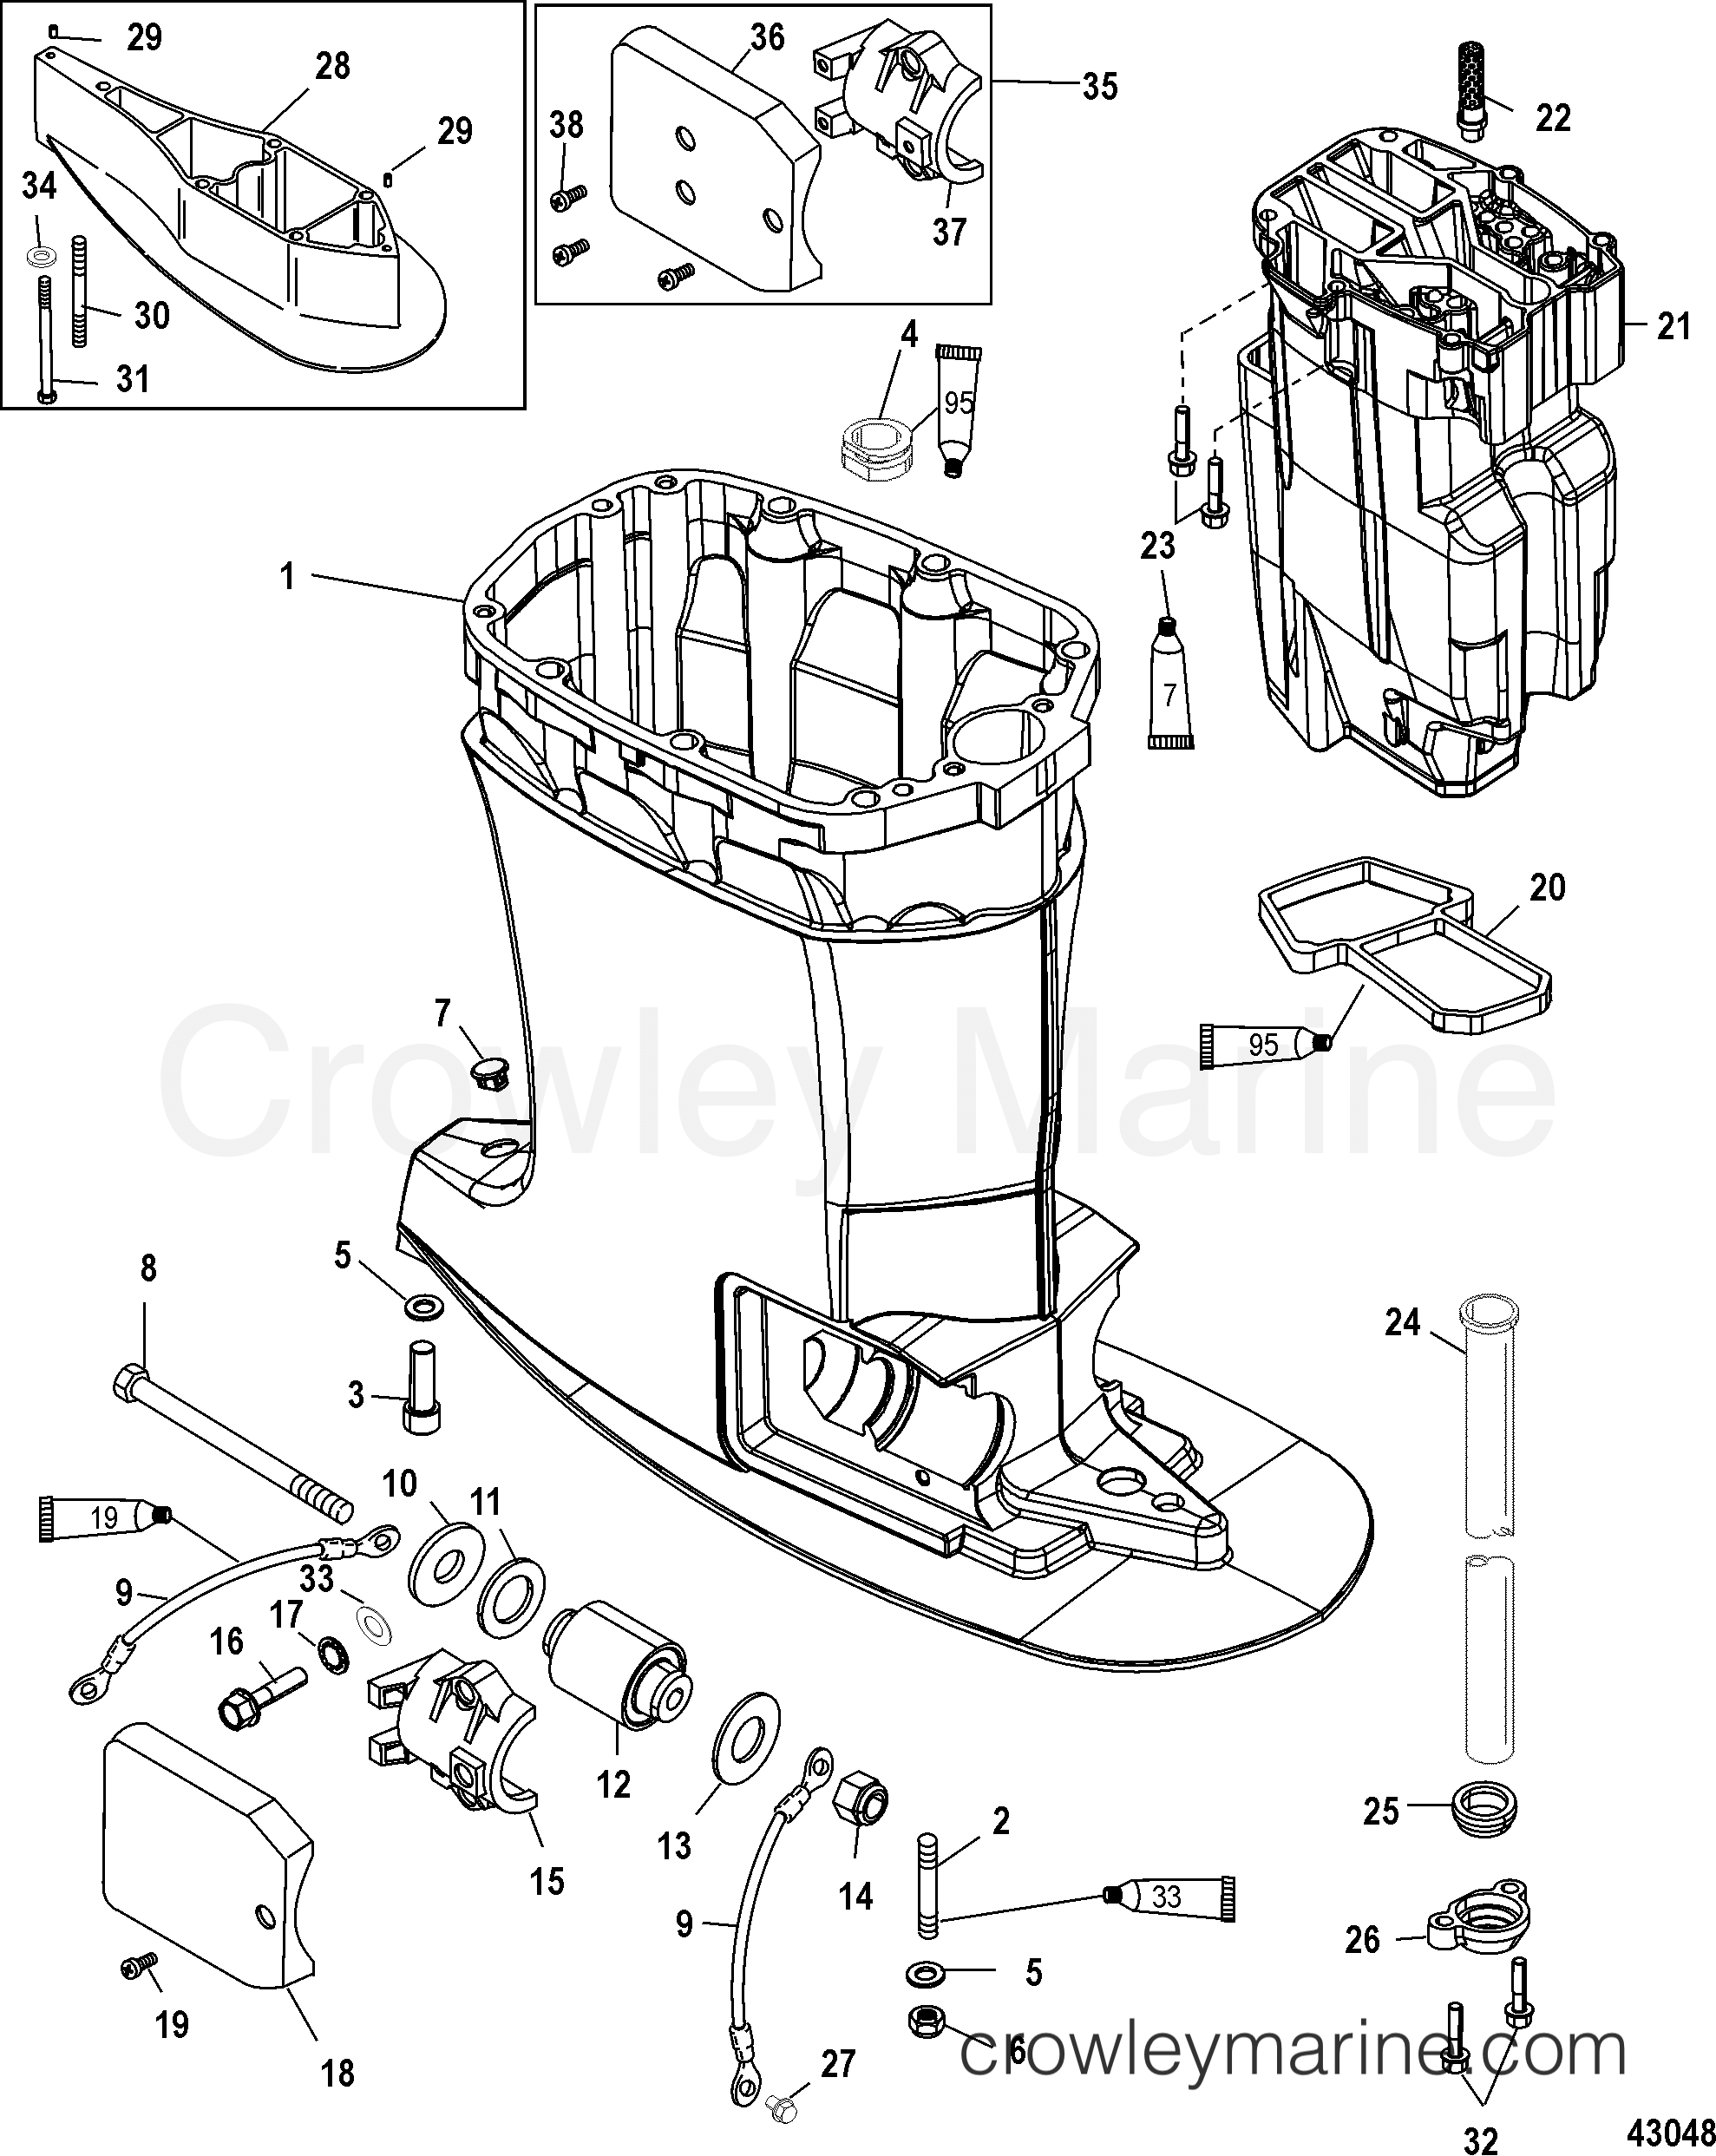 Driveshaft Housing And Exhaust Tube